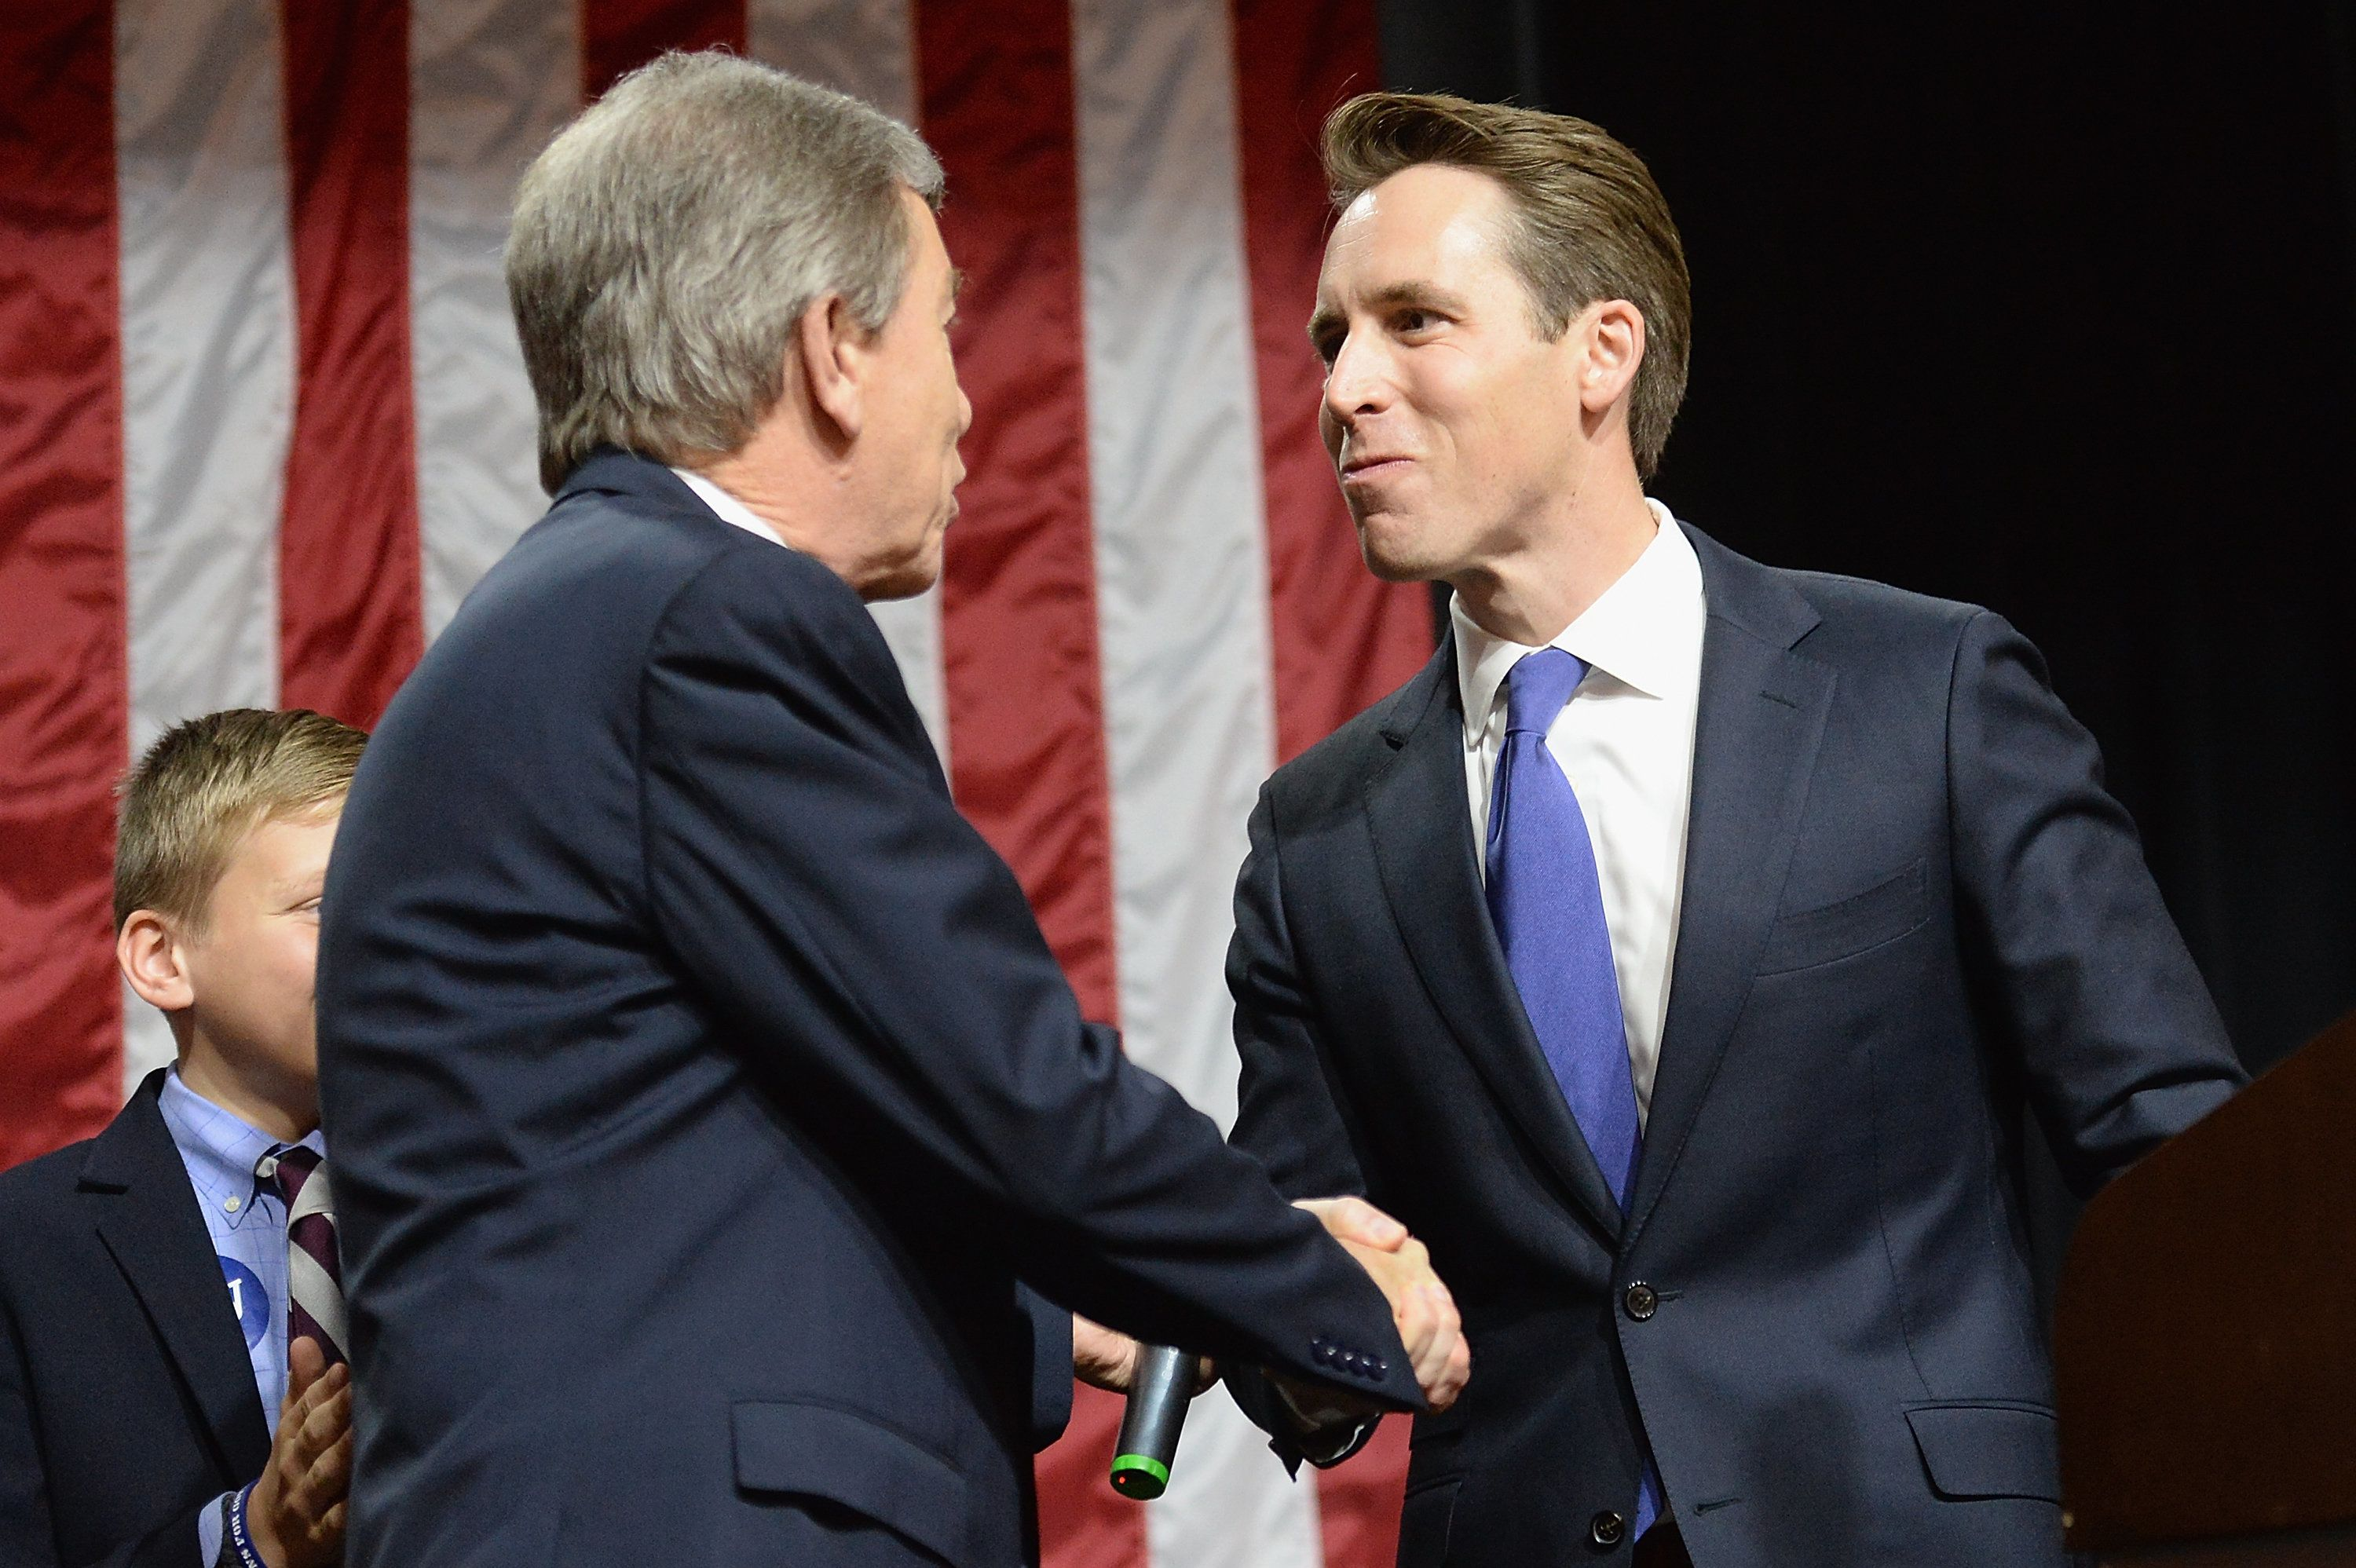 Missouri Attorney General Josh Hawley shakes hands in 2016 with GOP Sen. Roy Blunt, who he once joked about replacing.